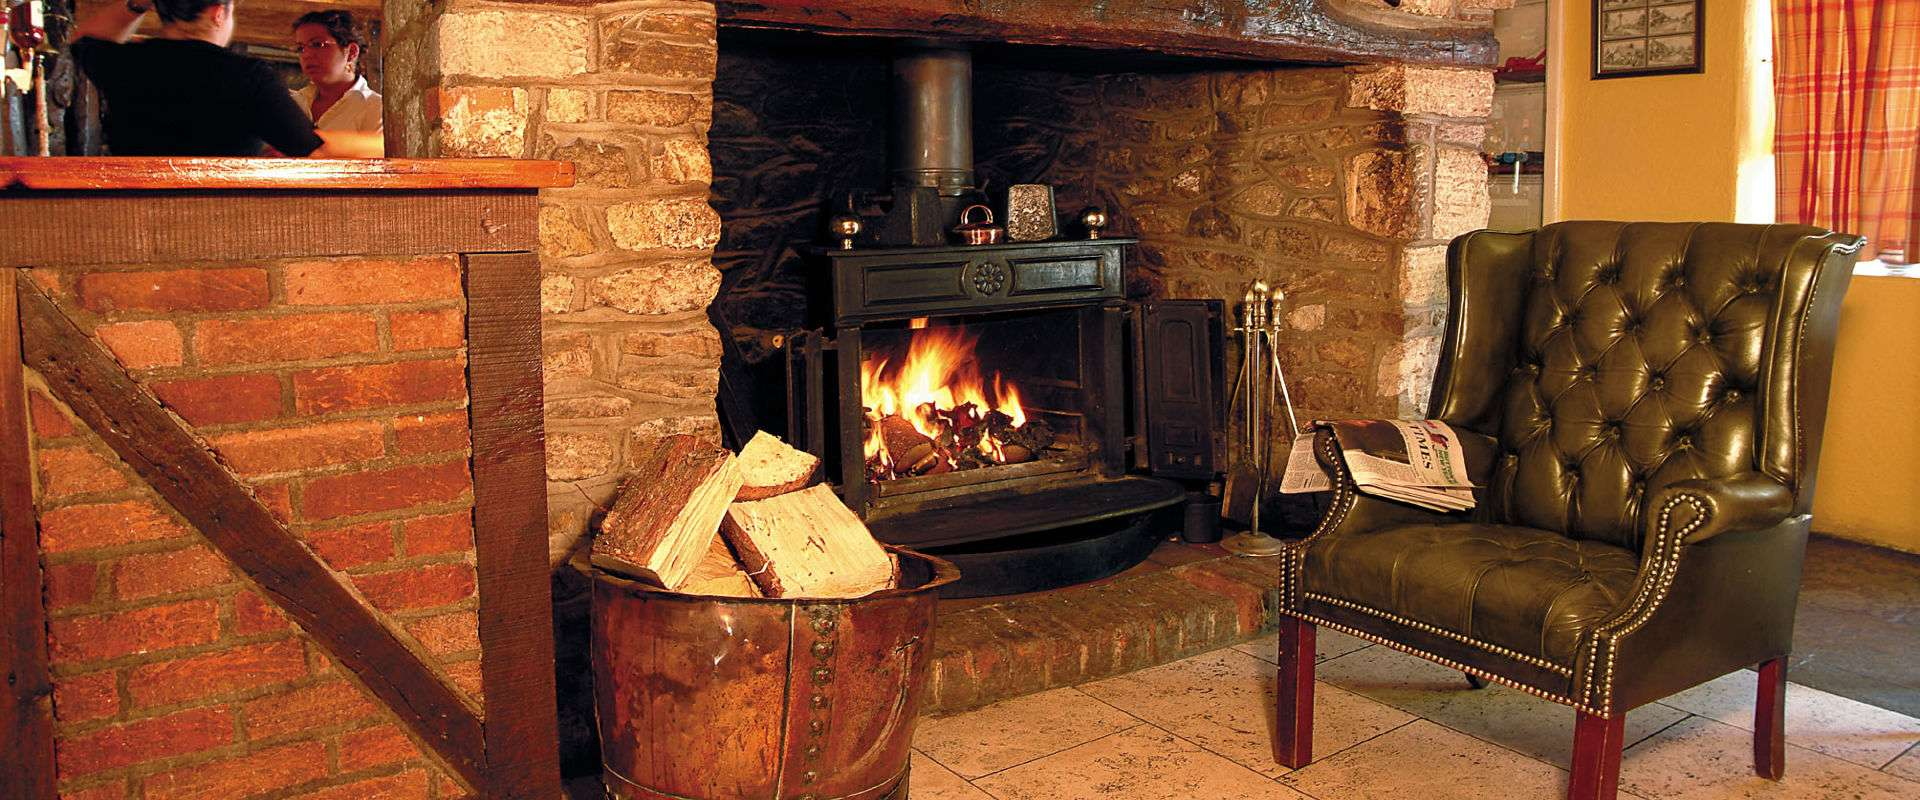 White Hart Fireside